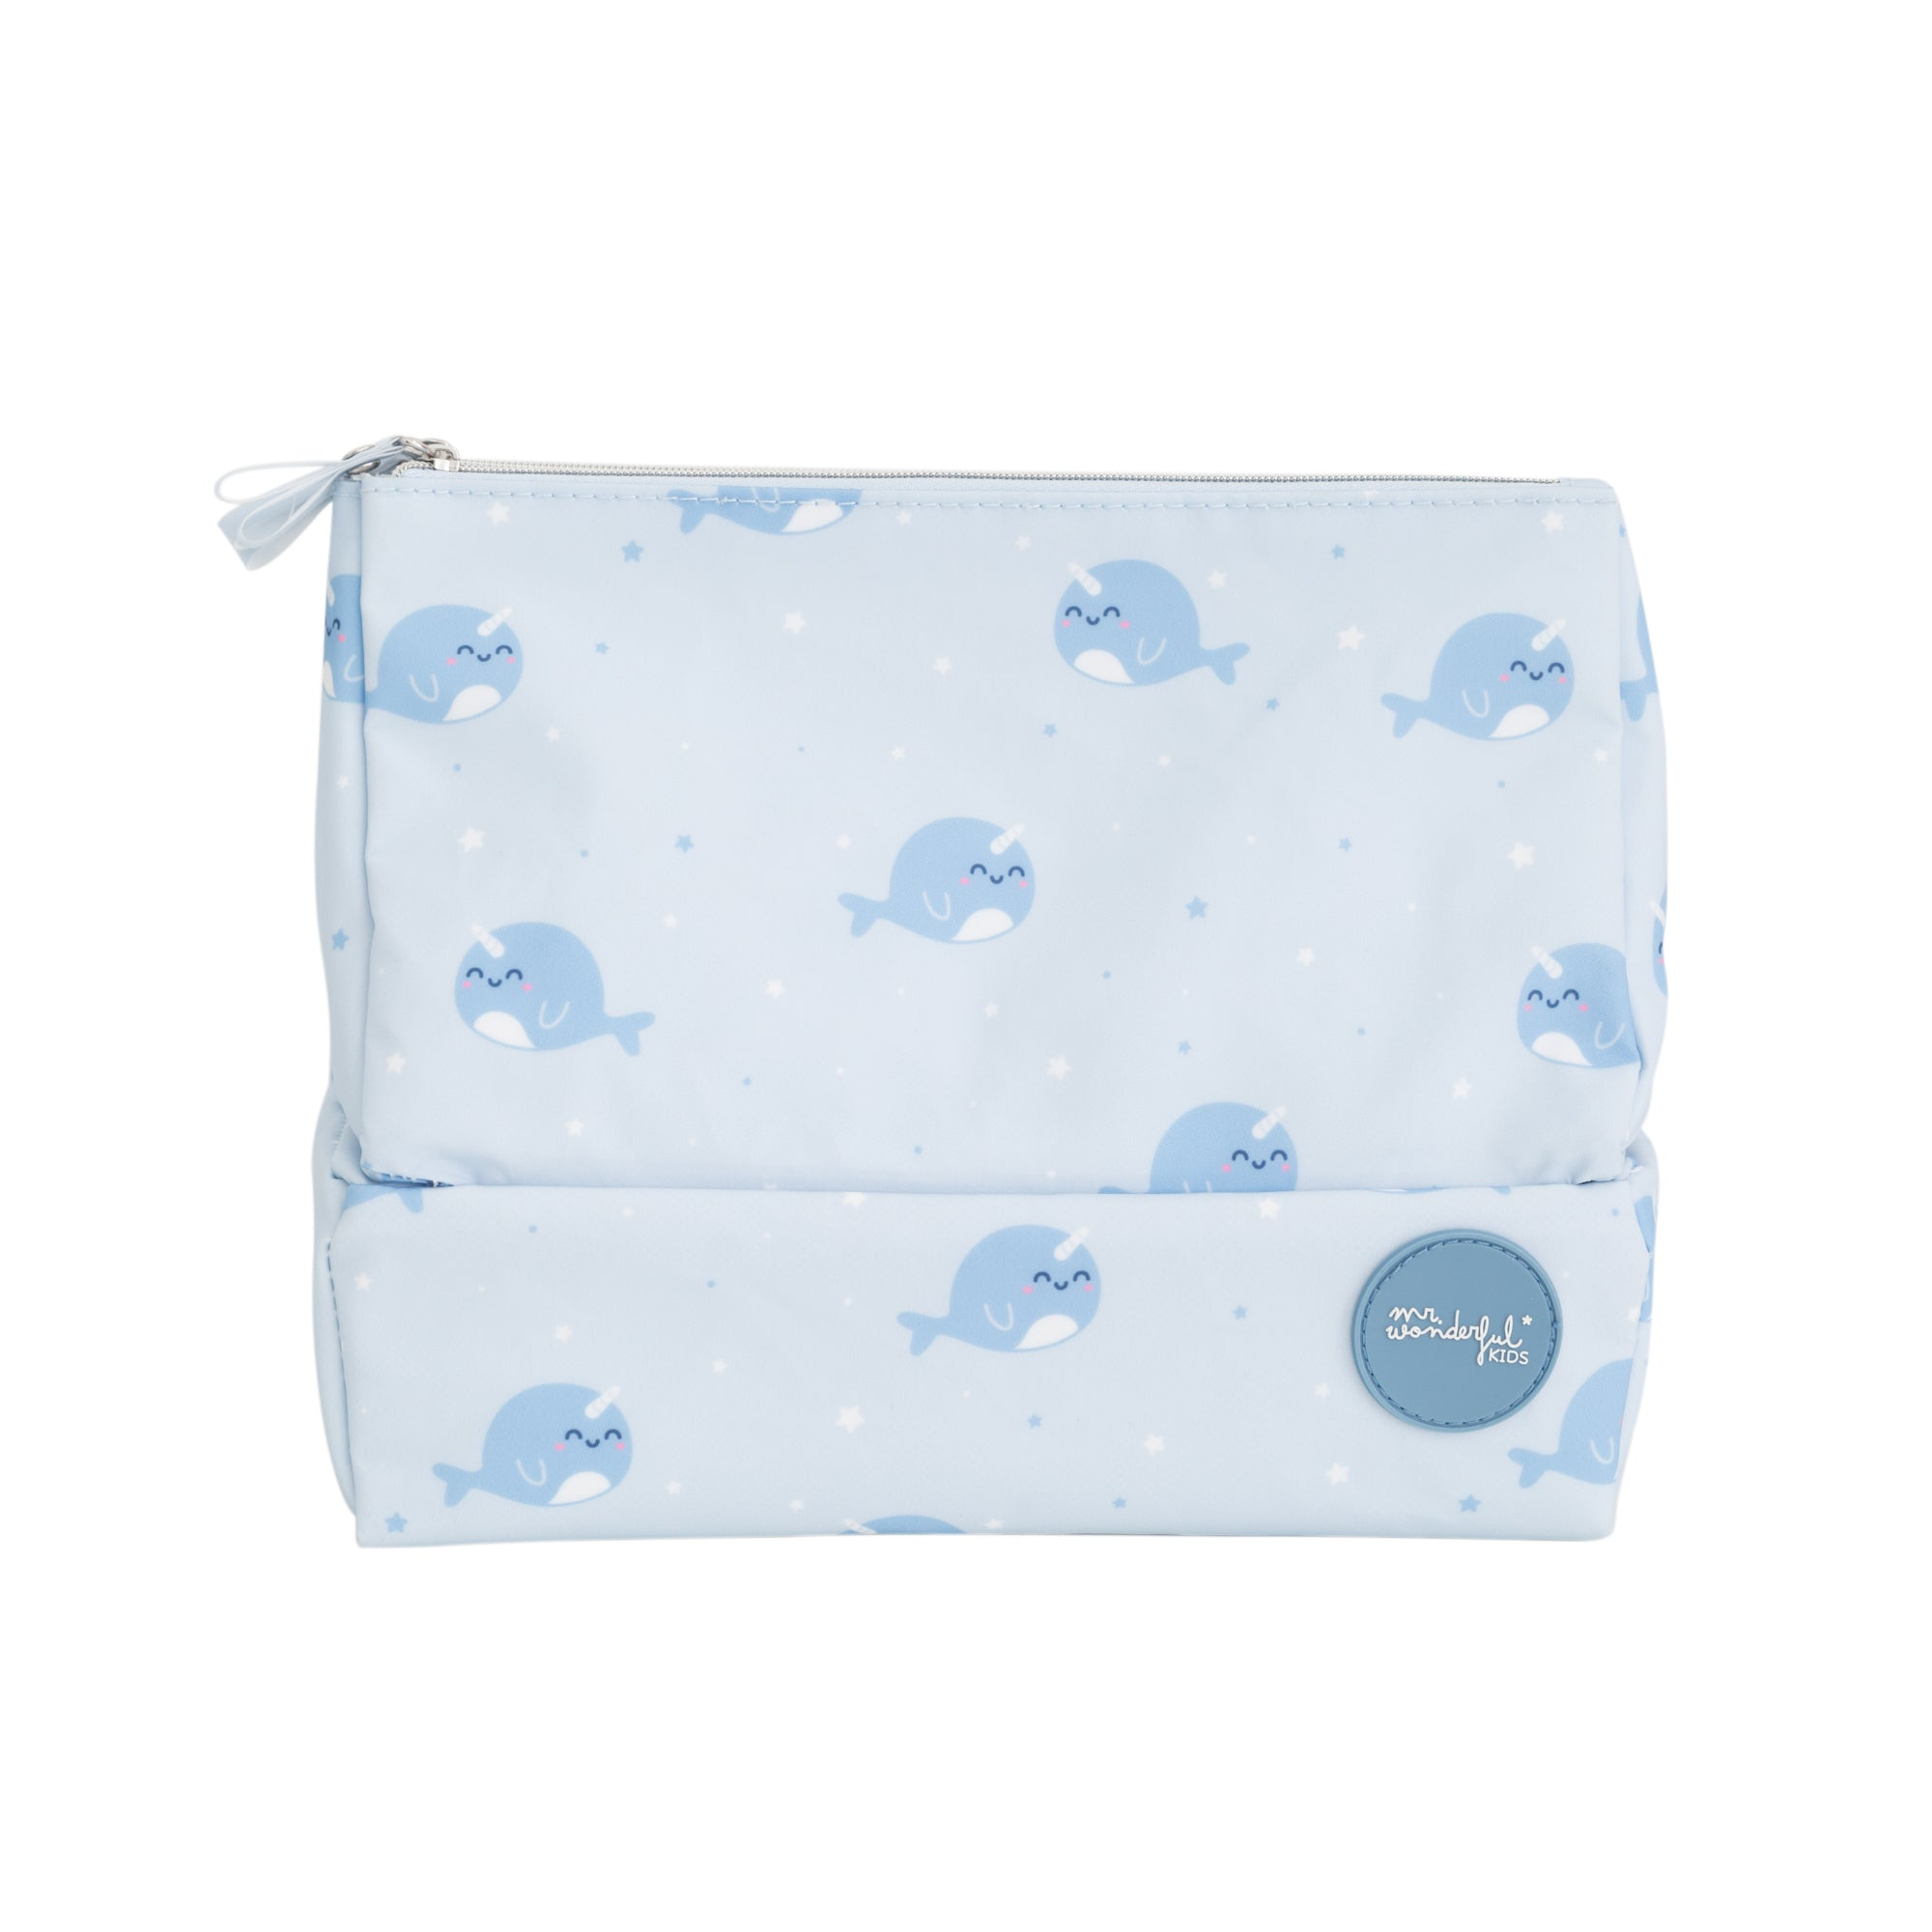 Baby toiletries bag